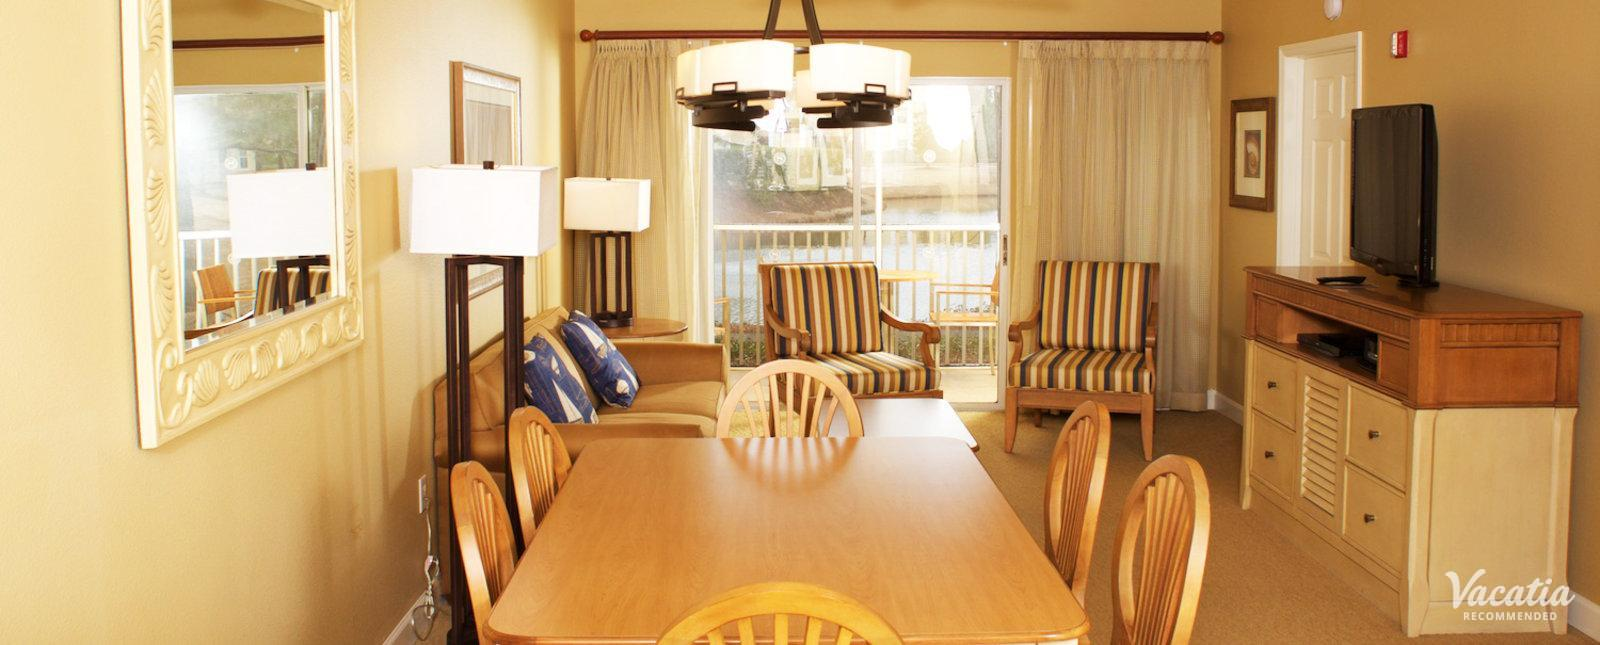 Sheraton Broadway Plantation Resort Villas family condo rentals